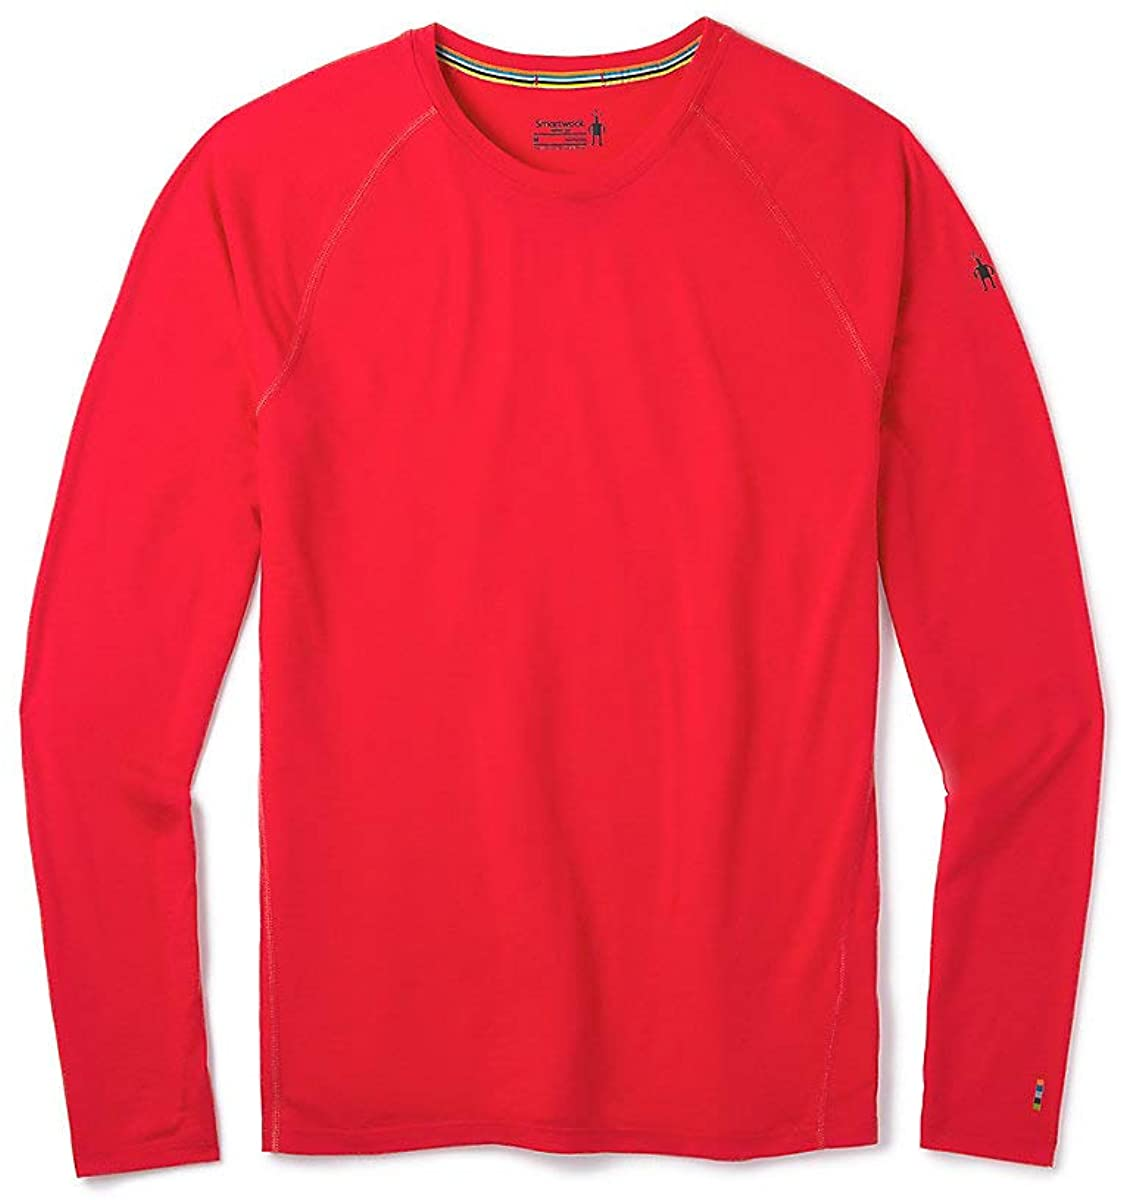 Men's Smartwool Merino 150 Base Layer Long Sleeve in Cardinal Red view from the front